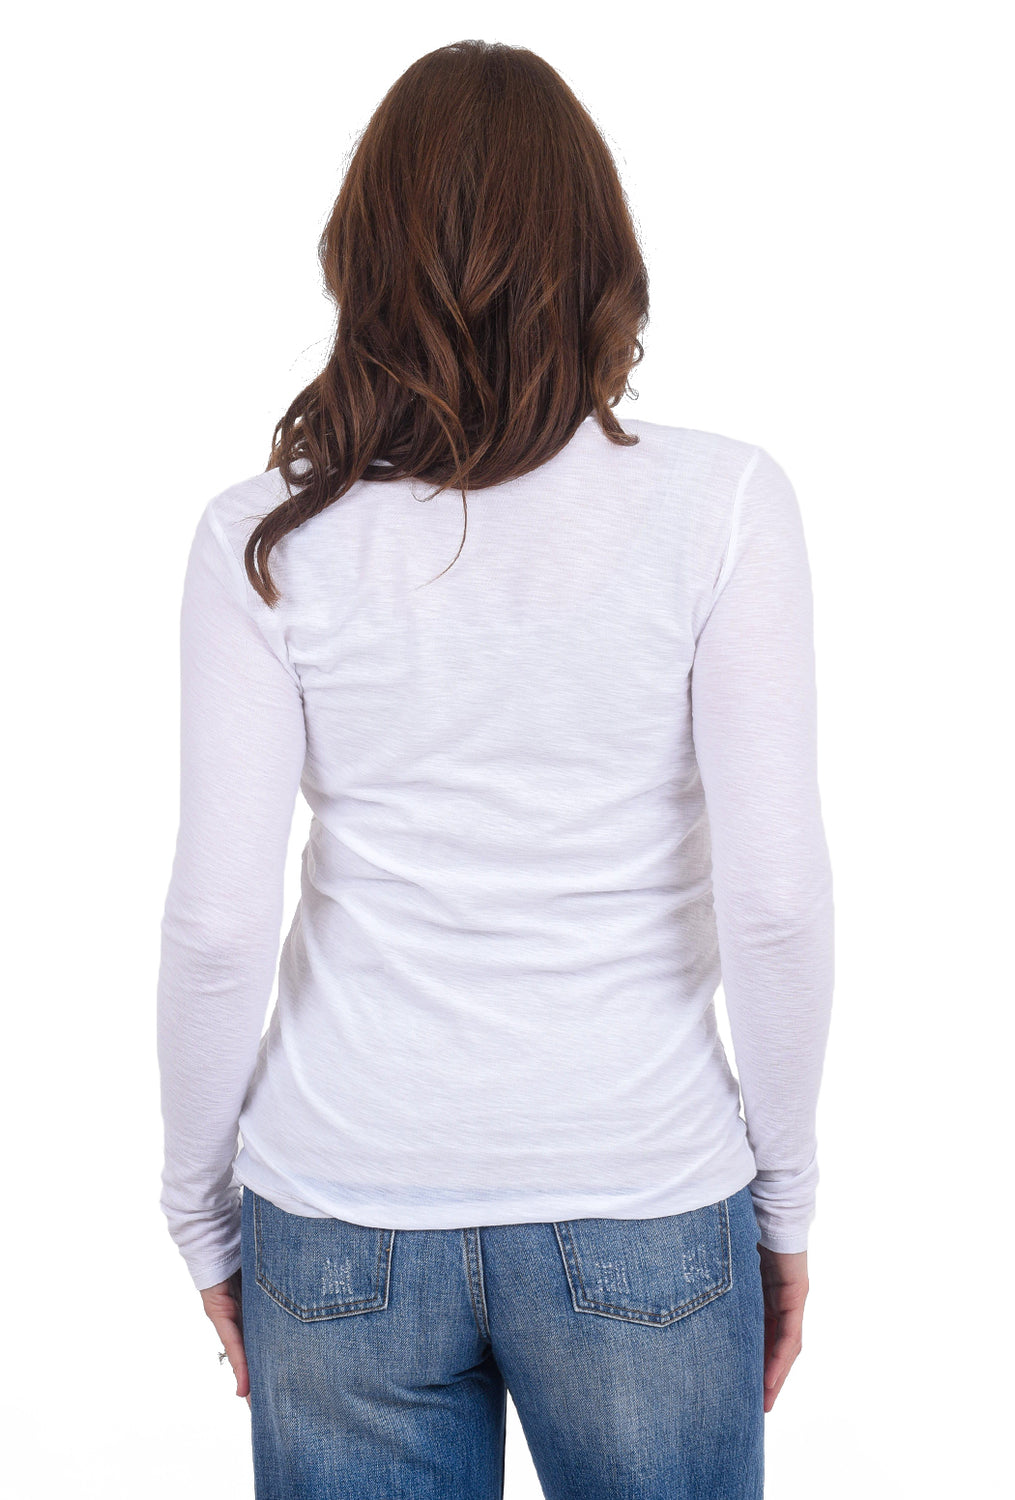 Commune Malibu Crewneck Tee, White